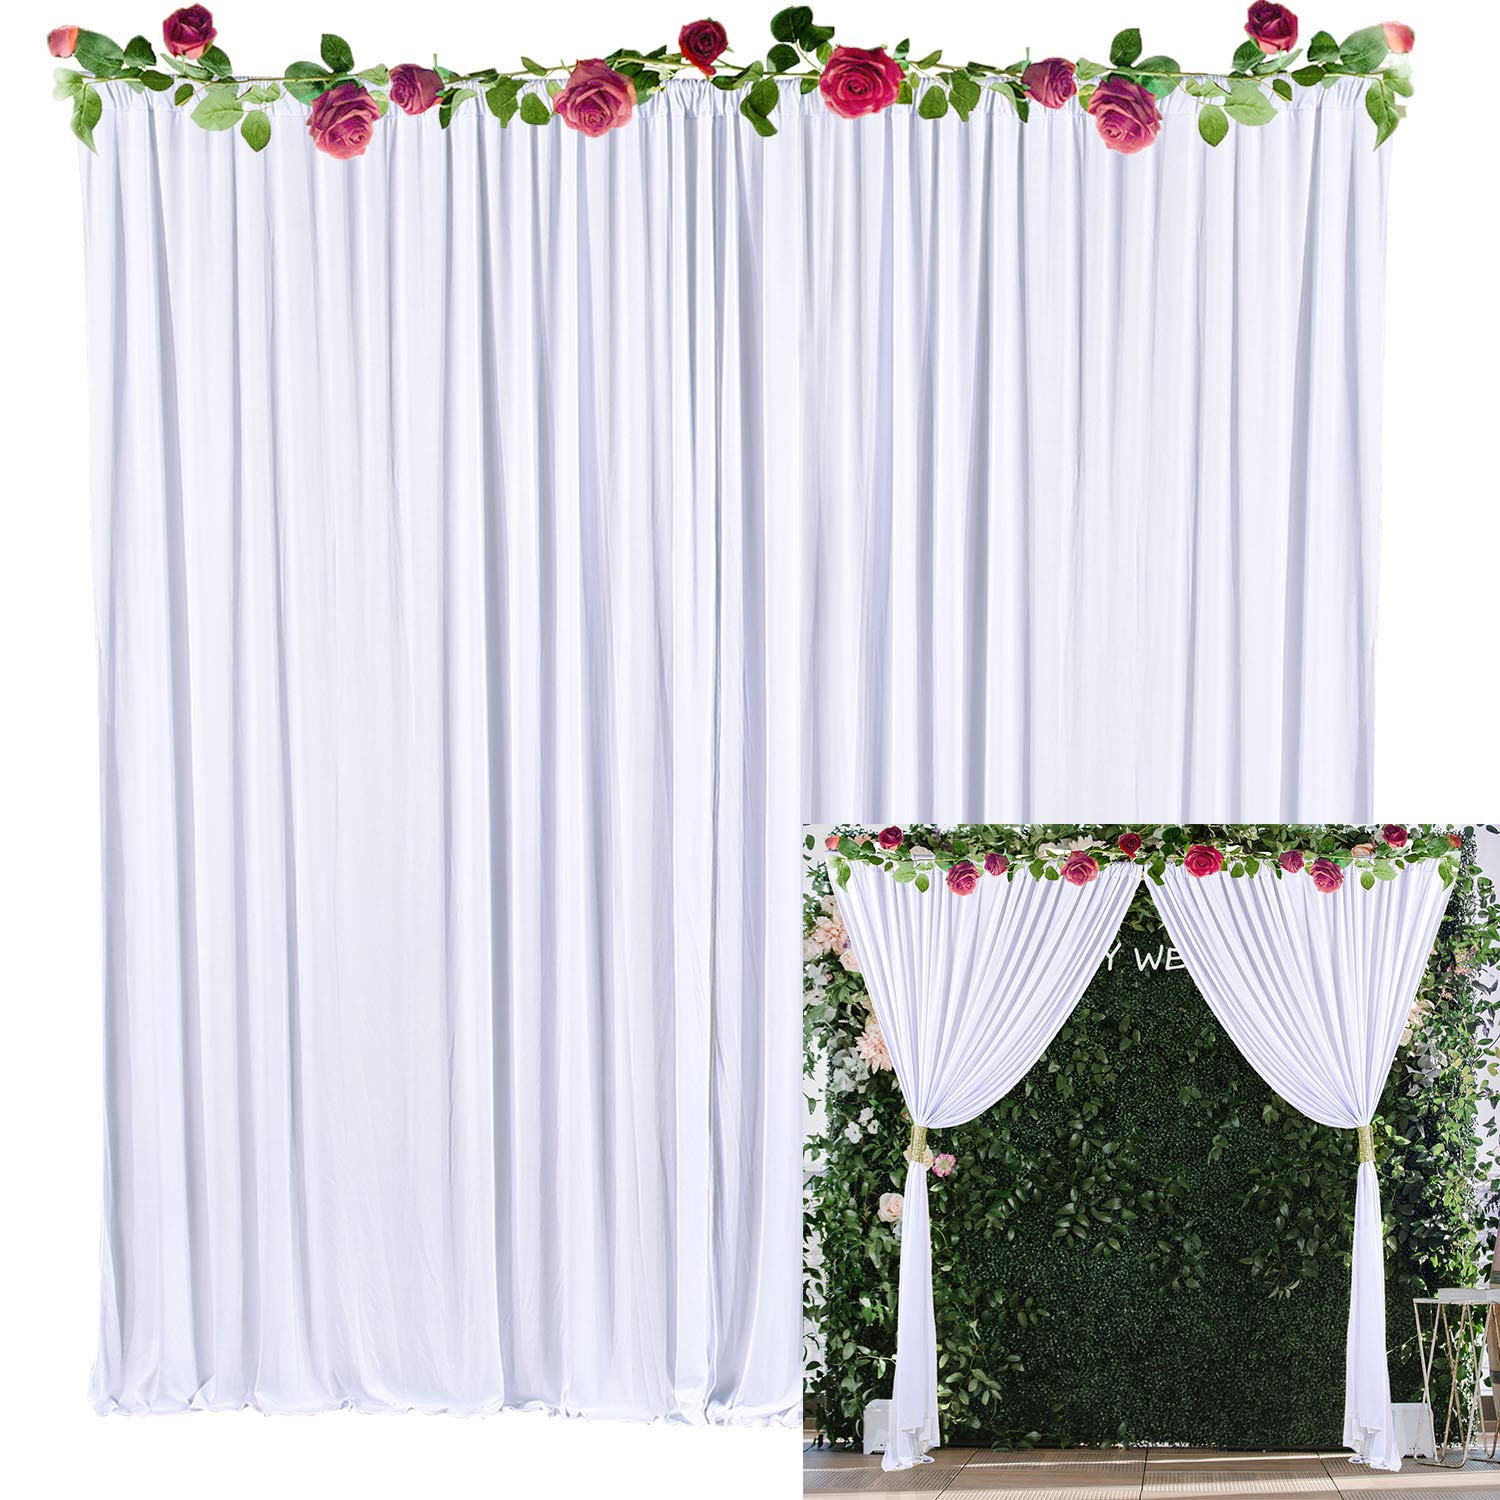 White Backdrop Curtain Photo Drape Backdrop for Weddings Baby Shower Birthday Party Engagement Photography with Golden Curtain Tiebacks 5ft x 10ft (Pack of Two)